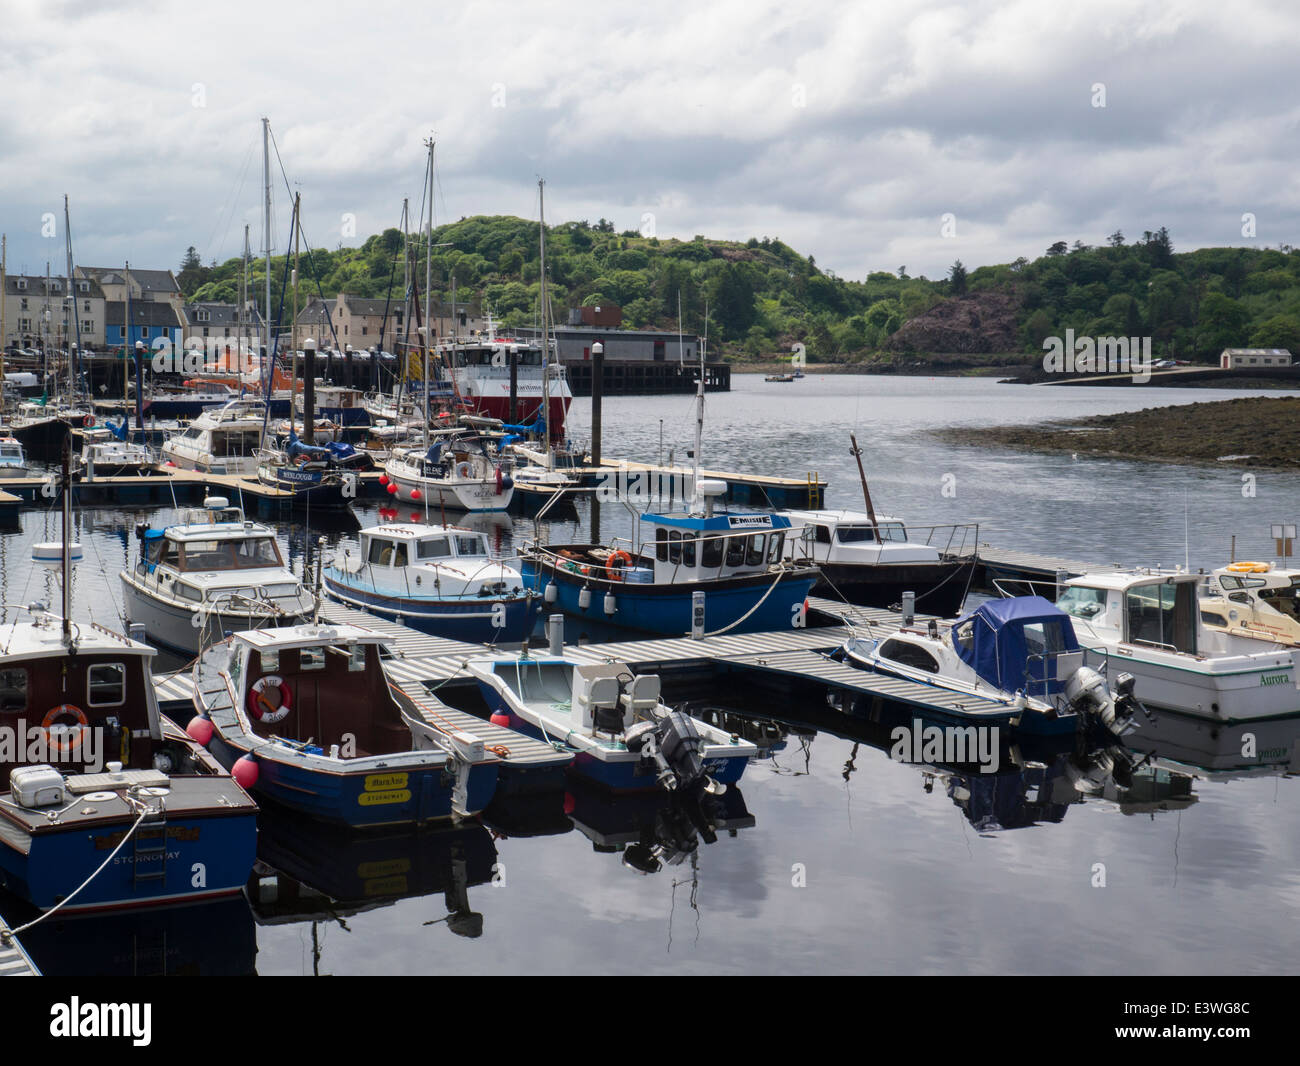 Leisure craft moored in Stornoway harbour Isle of Lewis Outer Hebrides - Stock Image